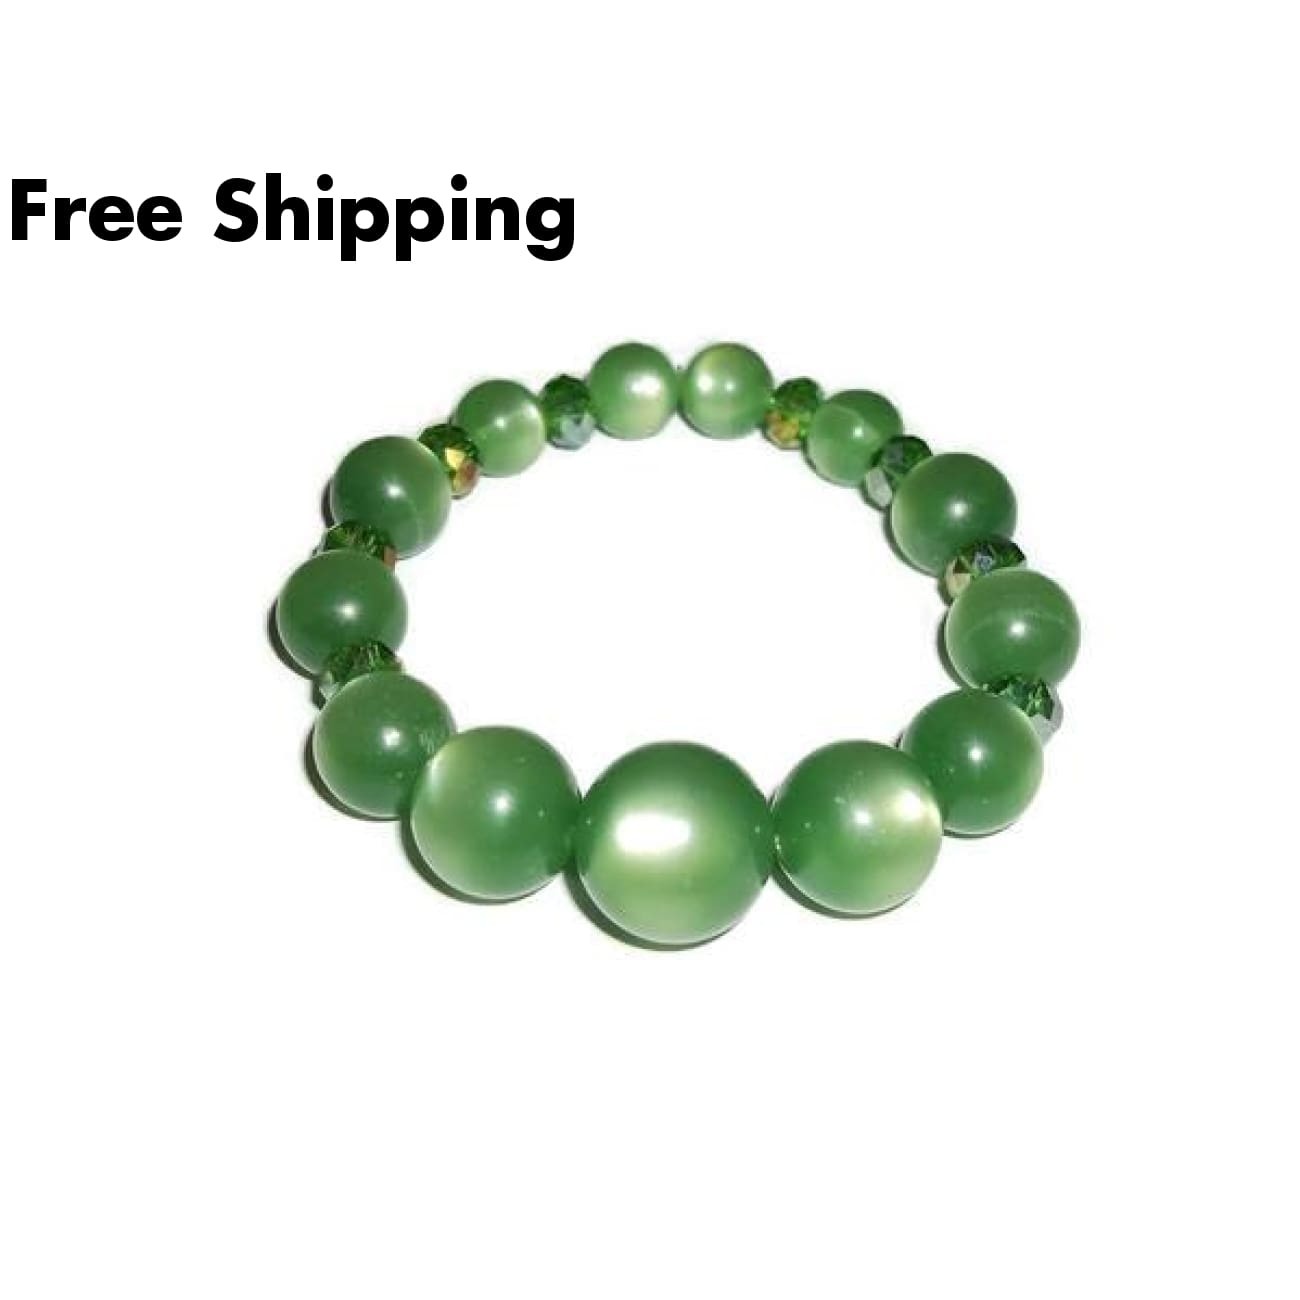 Green Cats Eye & Swarovski Crystal Beaded Stretch Bracelet - Bracelets